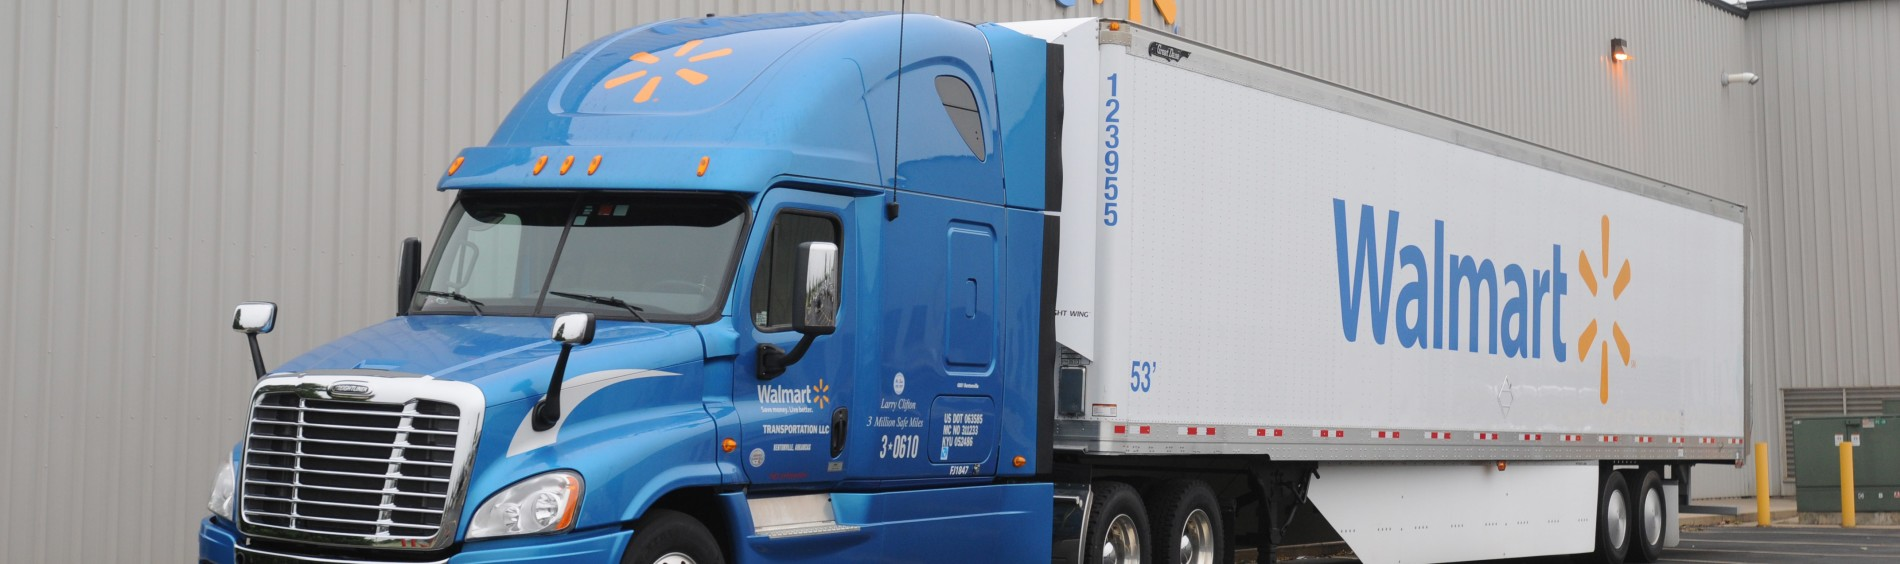 Picture of Walmart Logistics Truck - Side Angle